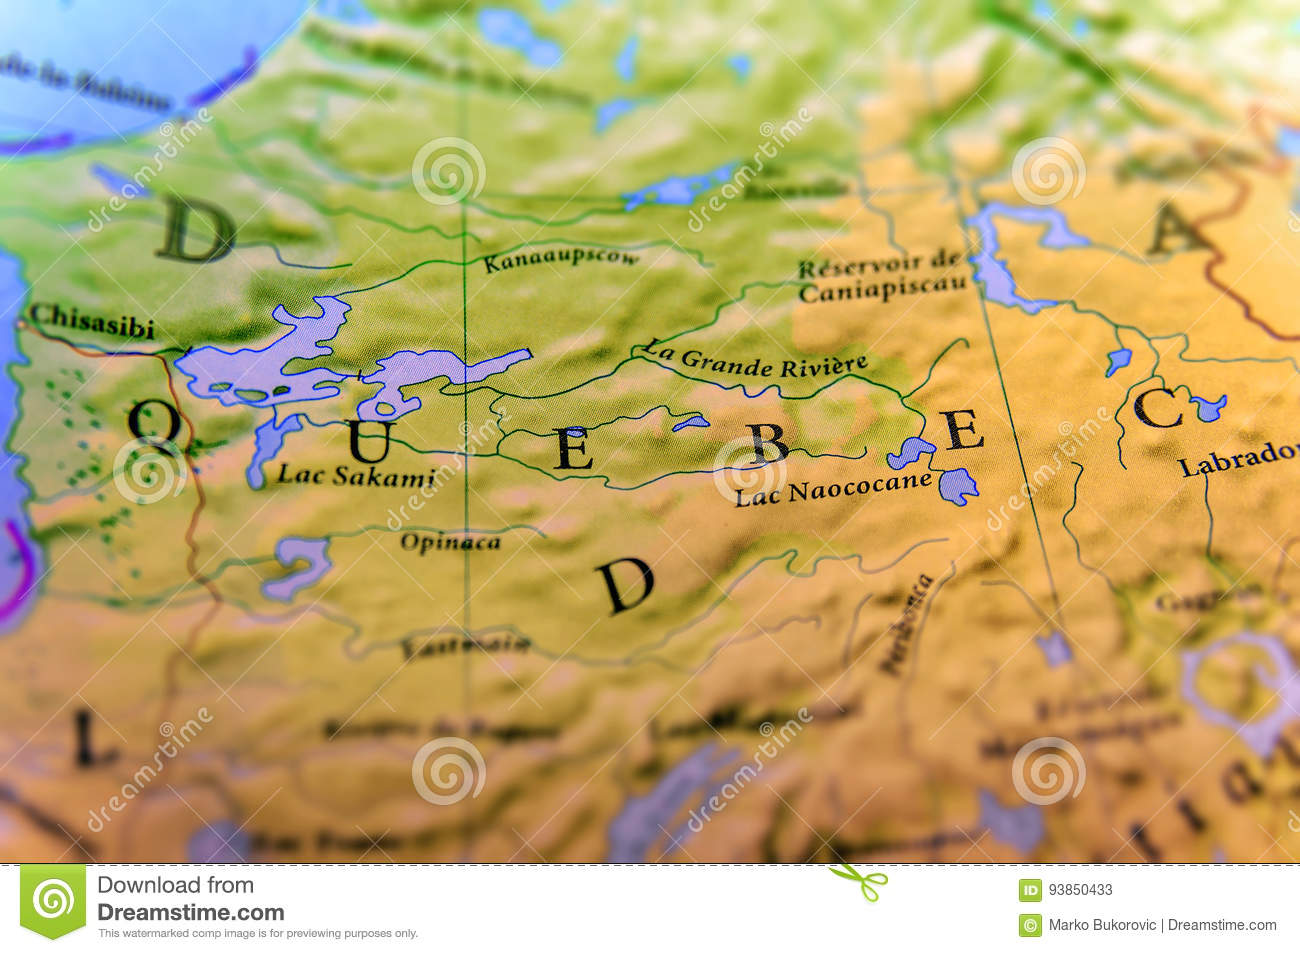 Quebec On Map Of Canada.Geographic Map Of Canada State Quebec With Important Cities Stock